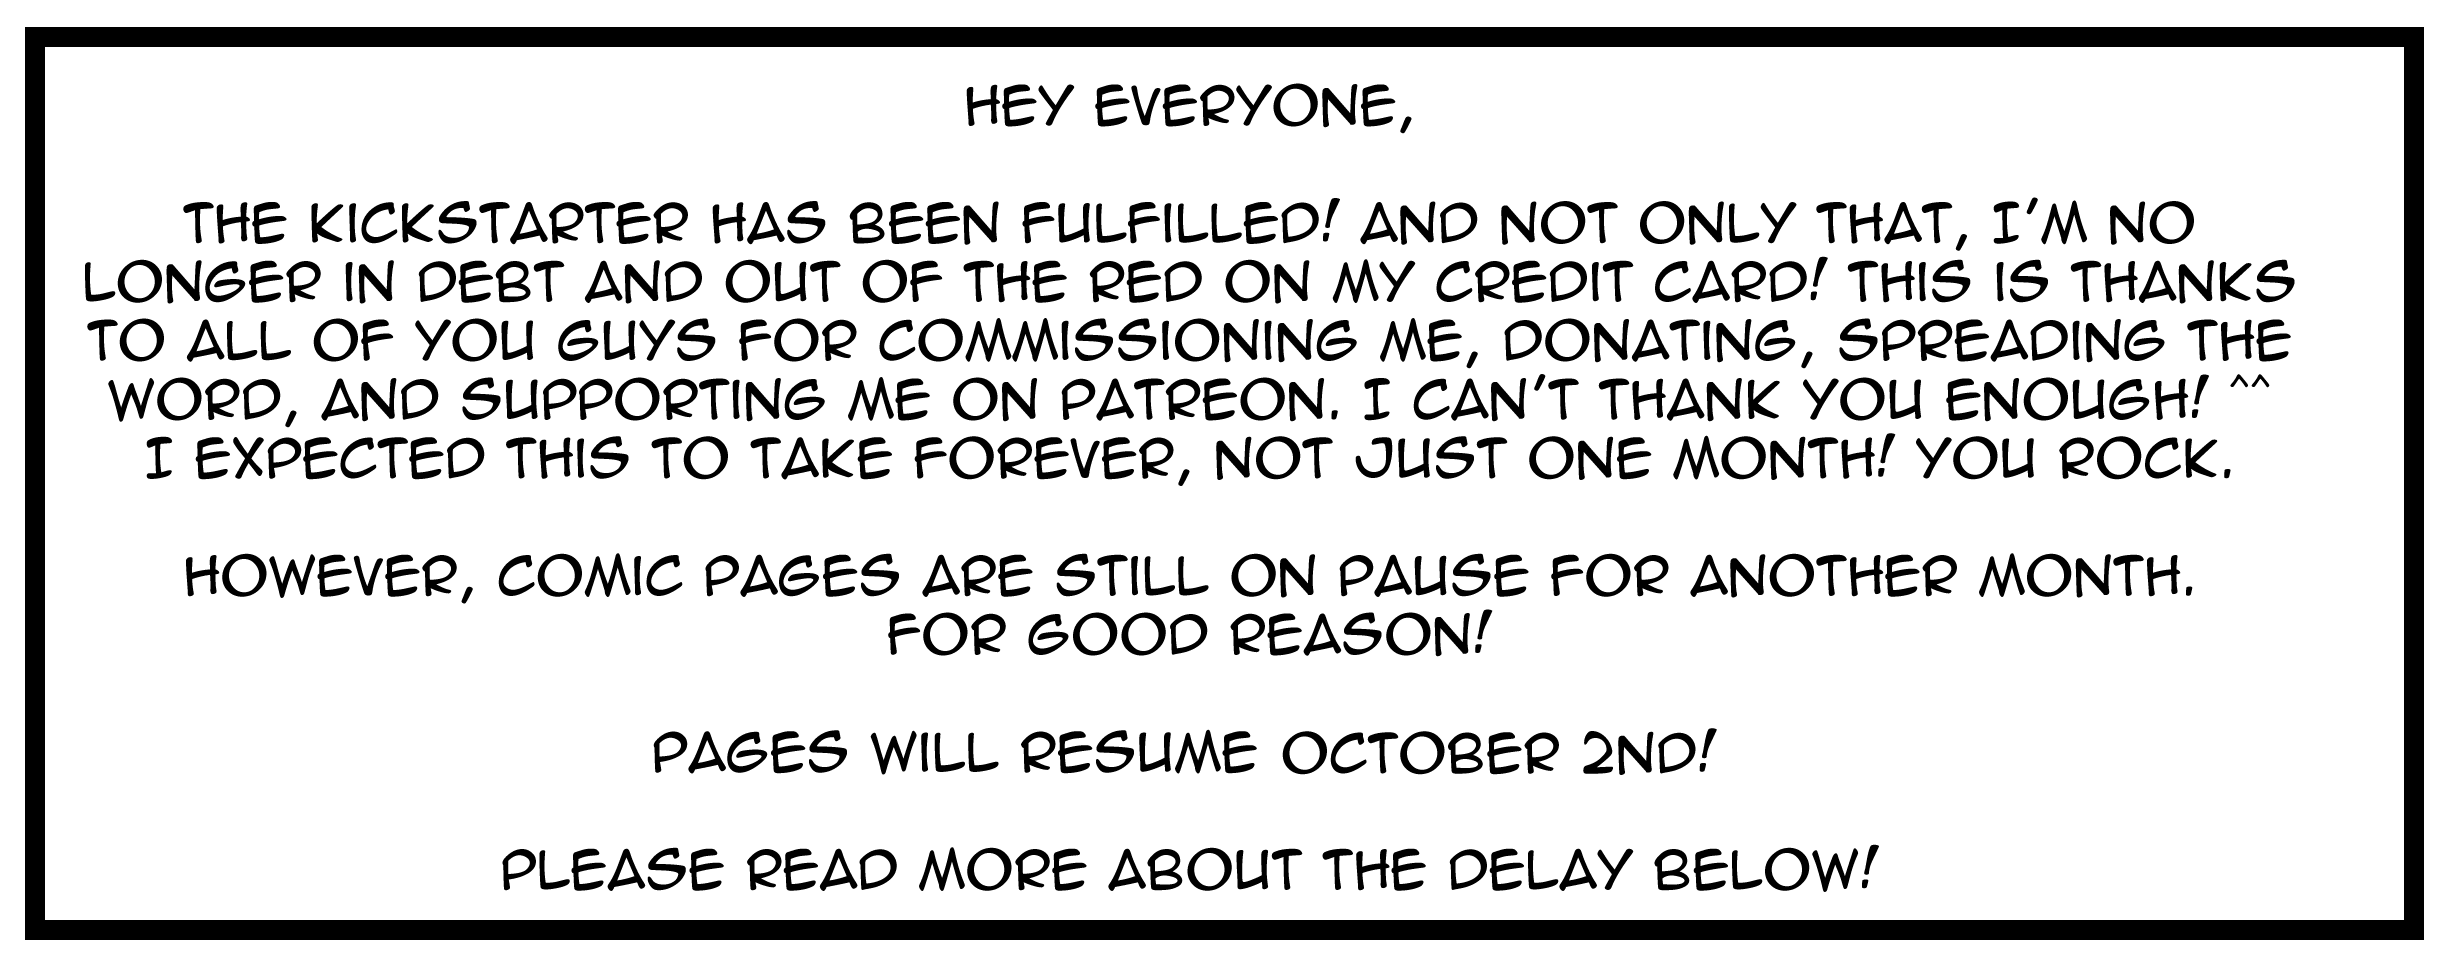 Star Warriors will resume page updates on October 2nd!